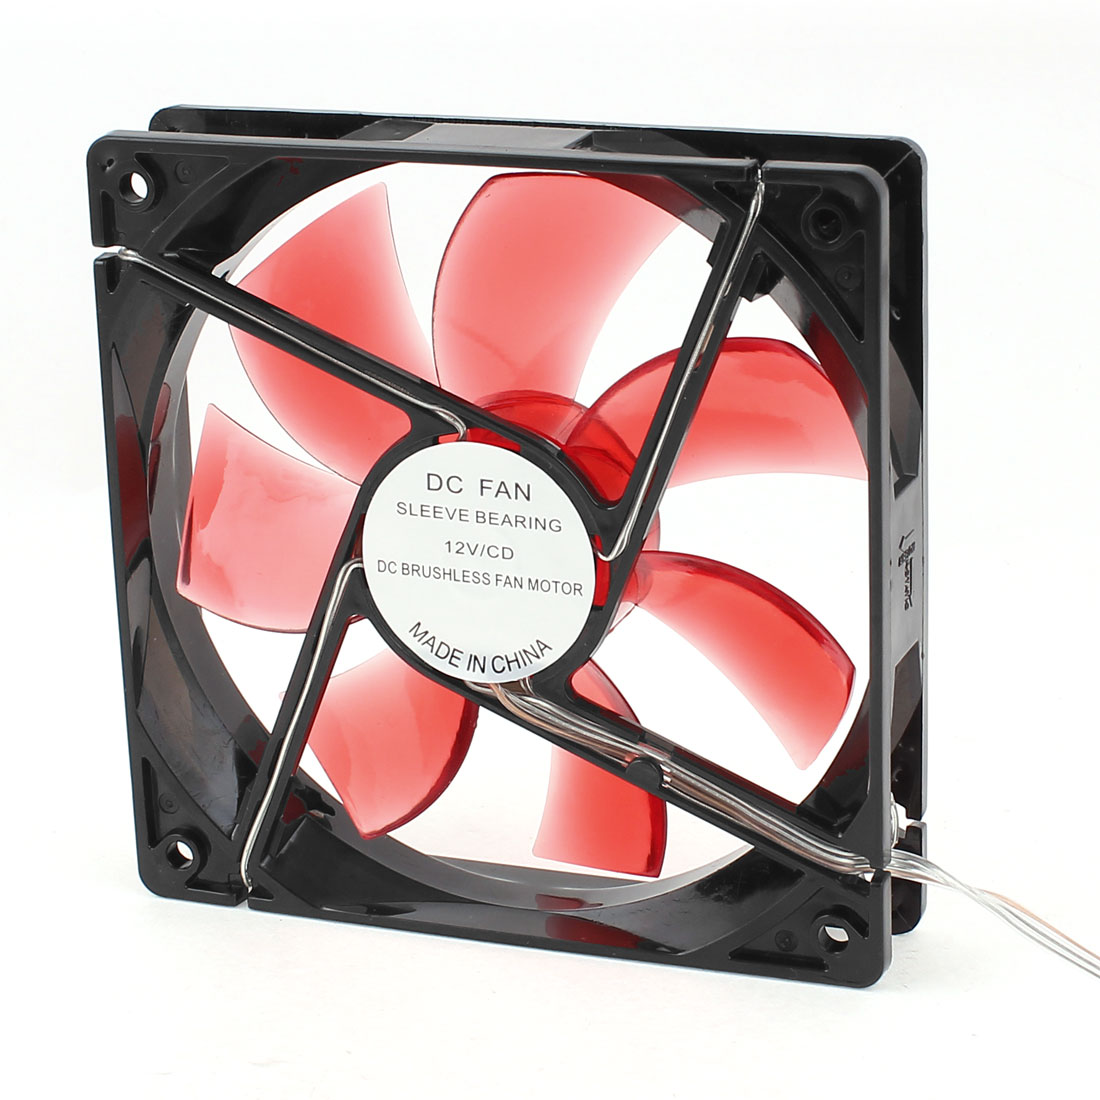 Red LED Light 7 cutter Cooler Cooling Brushless Sleeve Bearing DC Fan 12x2.5cm